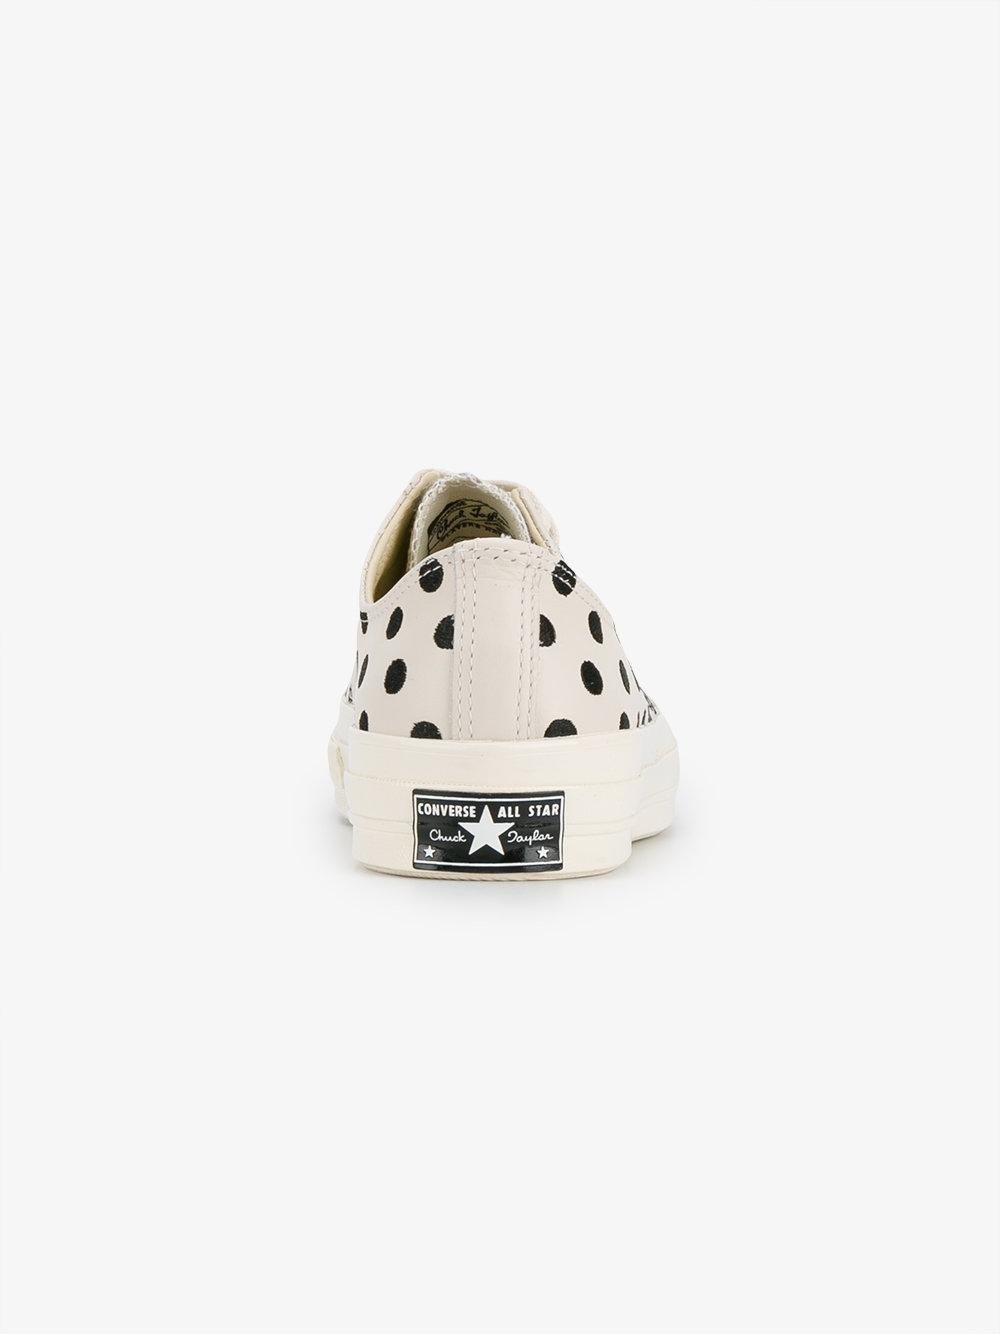 57763177c53a Lyst - Converse All Star 70s Polka Dot Sneakers for Men